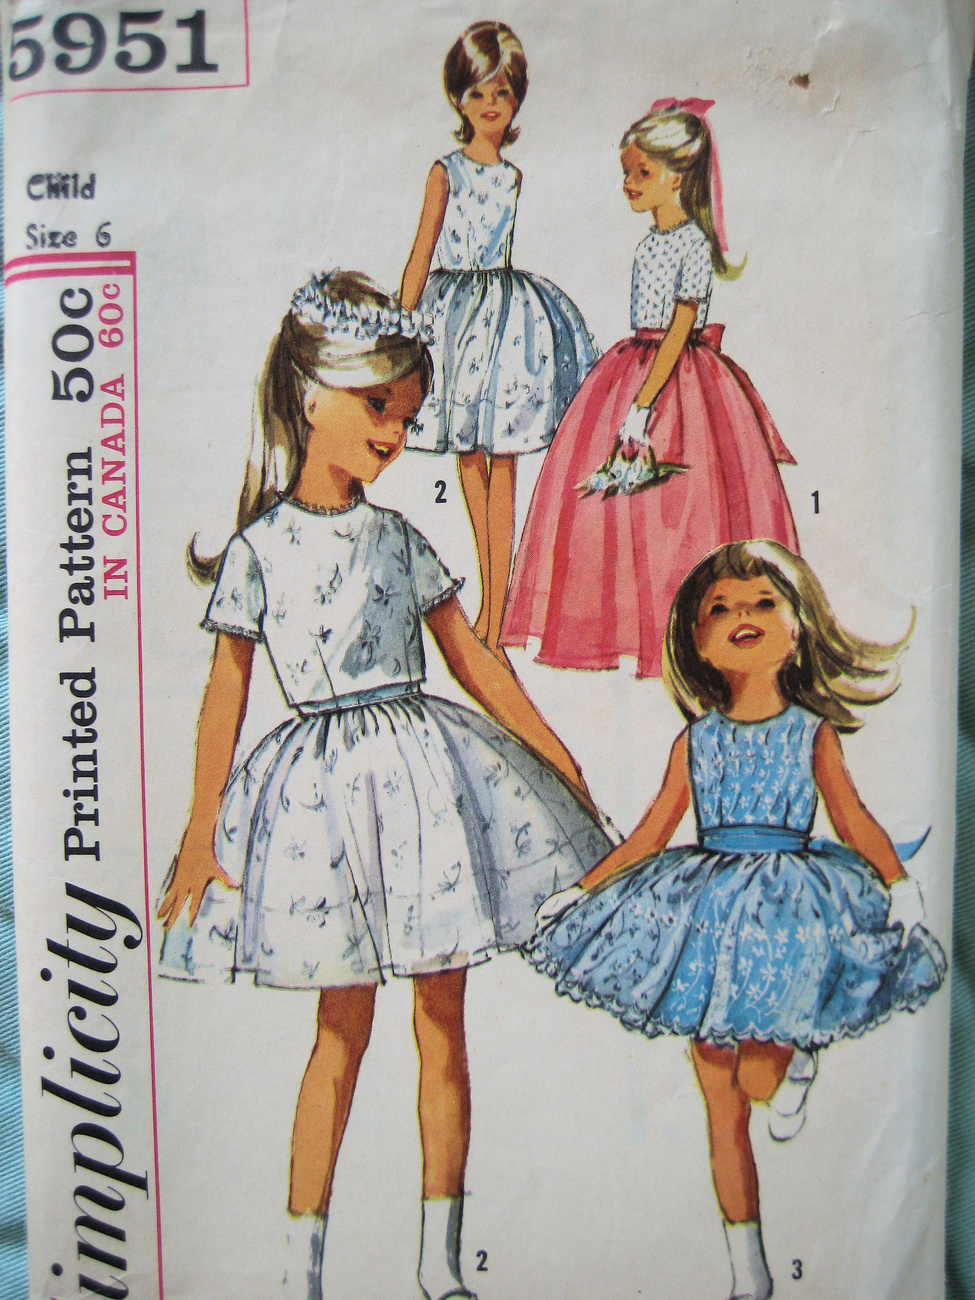 Simplicity 5951 Vintage 60s Pattern Flower Girl Size 6 Party Dress Simplicity New Look